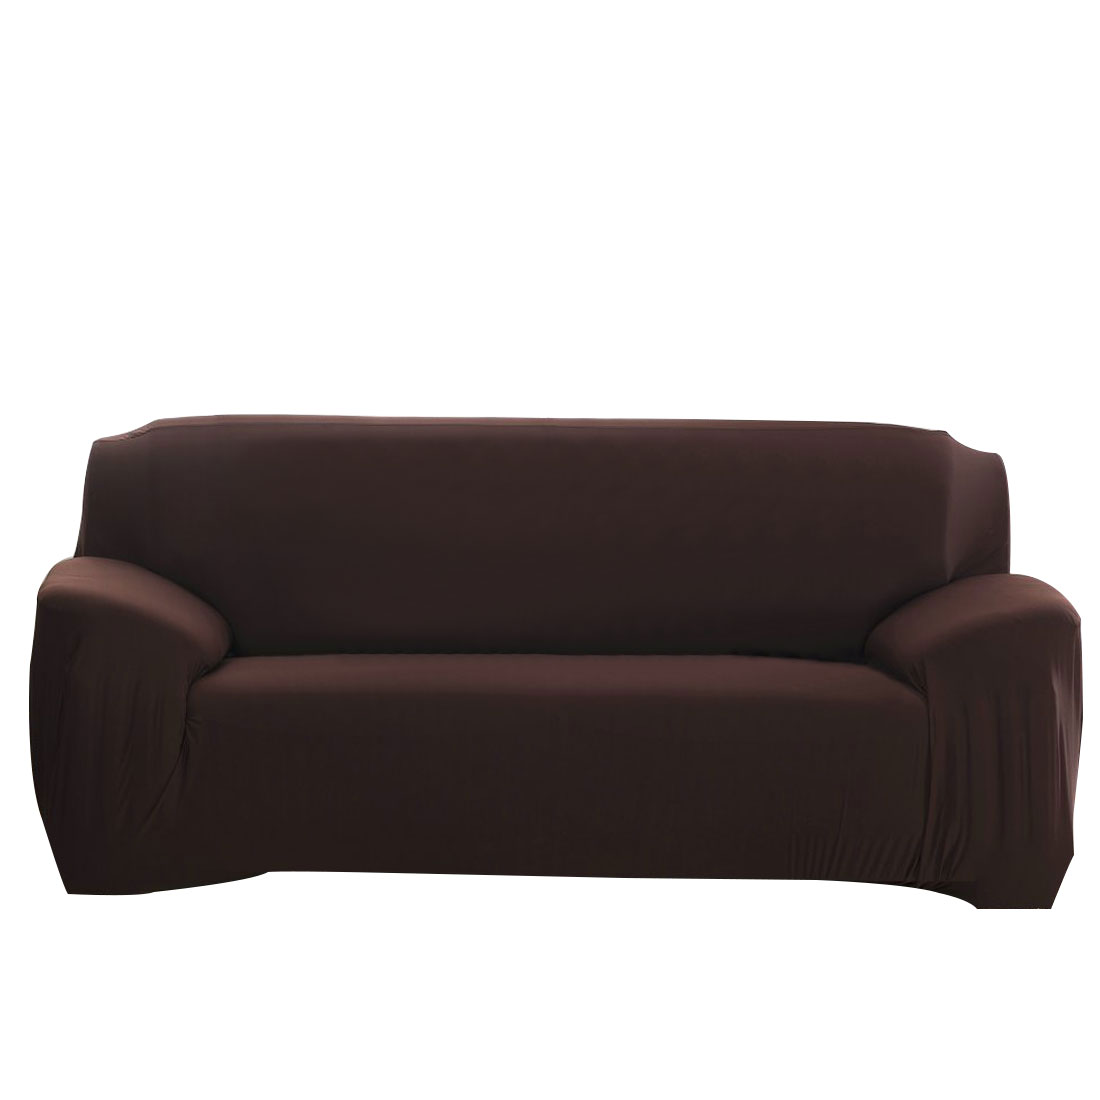 Home Sofa Couch Reversible Stretch Cover Slipcover Chocolate Color 74''-90''